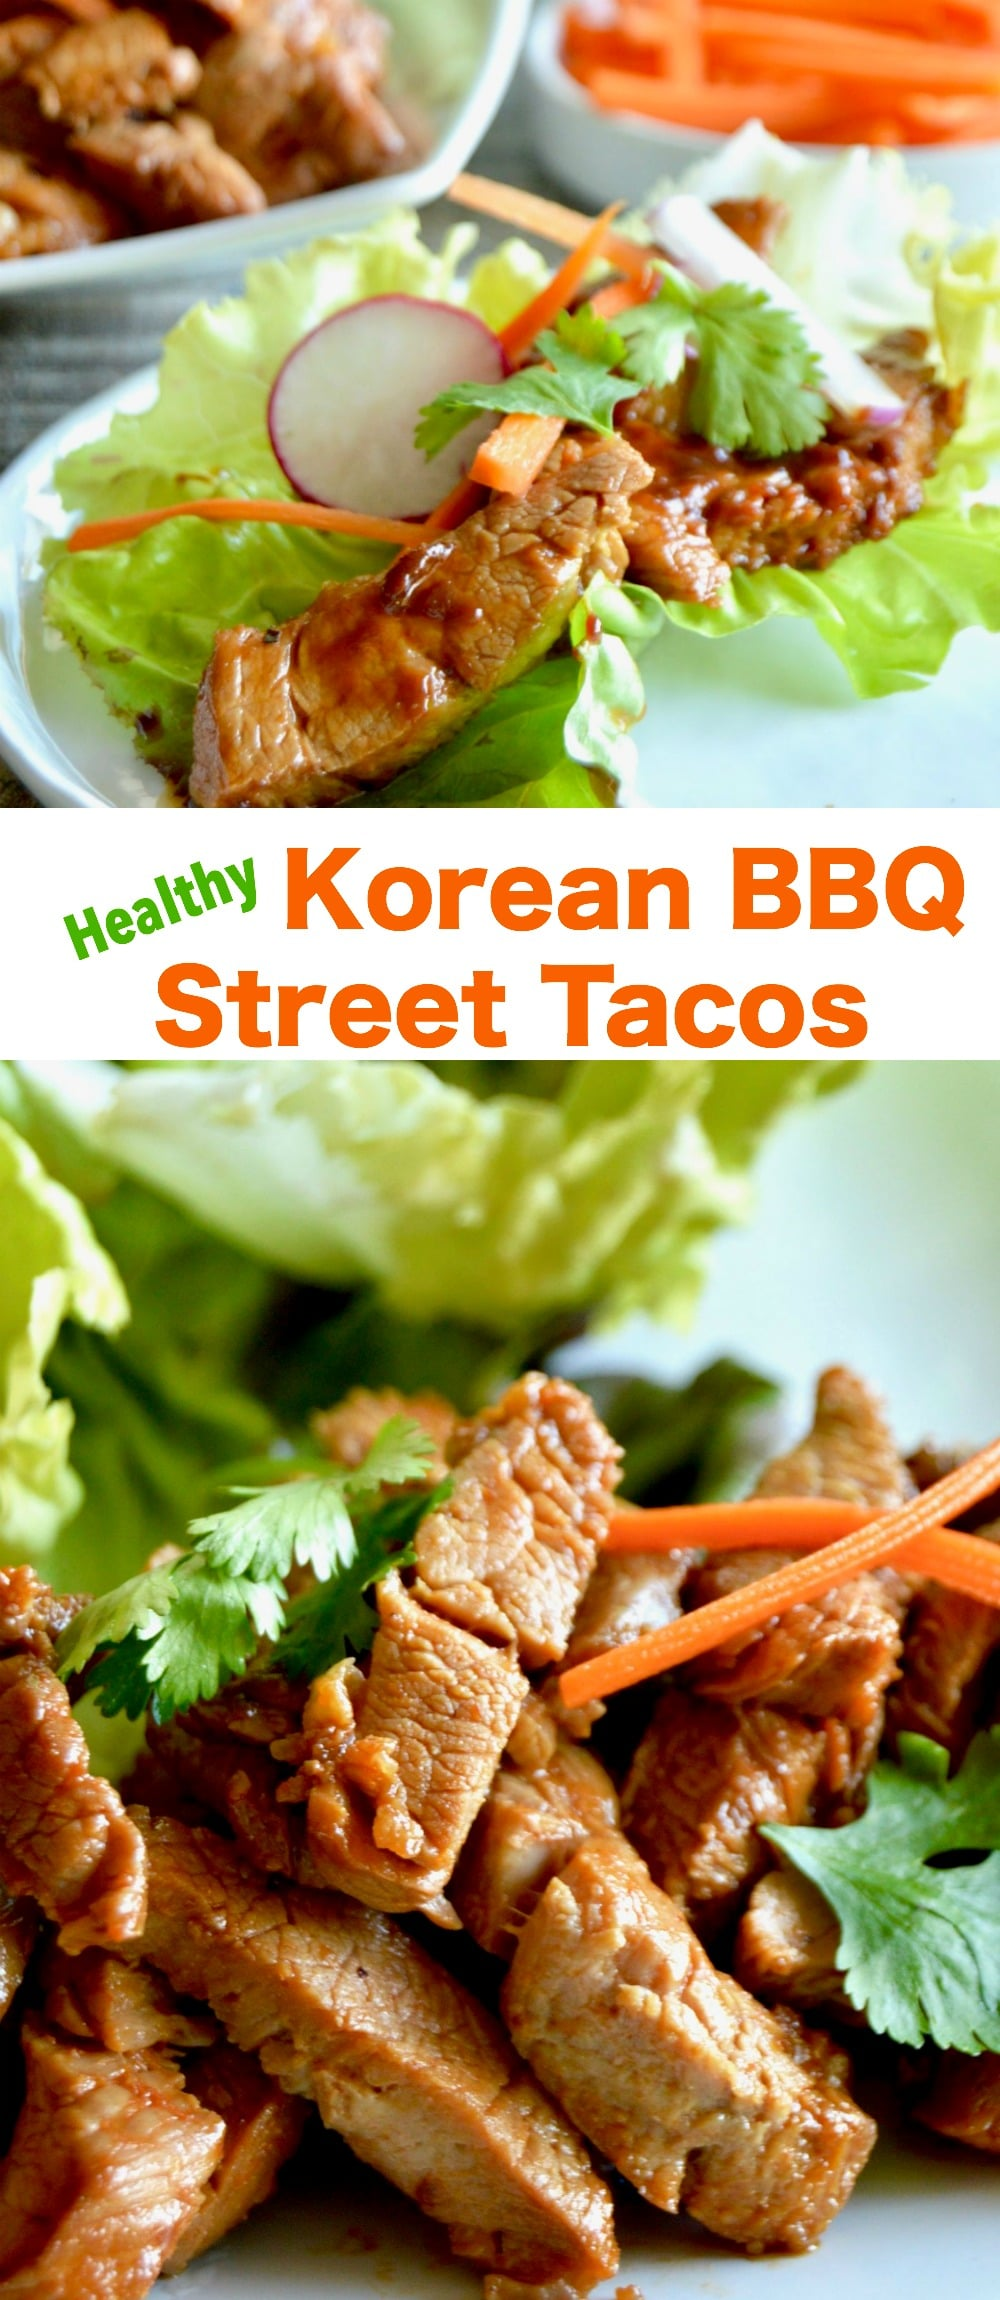 Healthy Korean BBQ Street tacos: a simple homemade seared pork filled taco that's super tender, bursting with flavor and topped with fresh veggies for a healthy taco Tuesday meal!